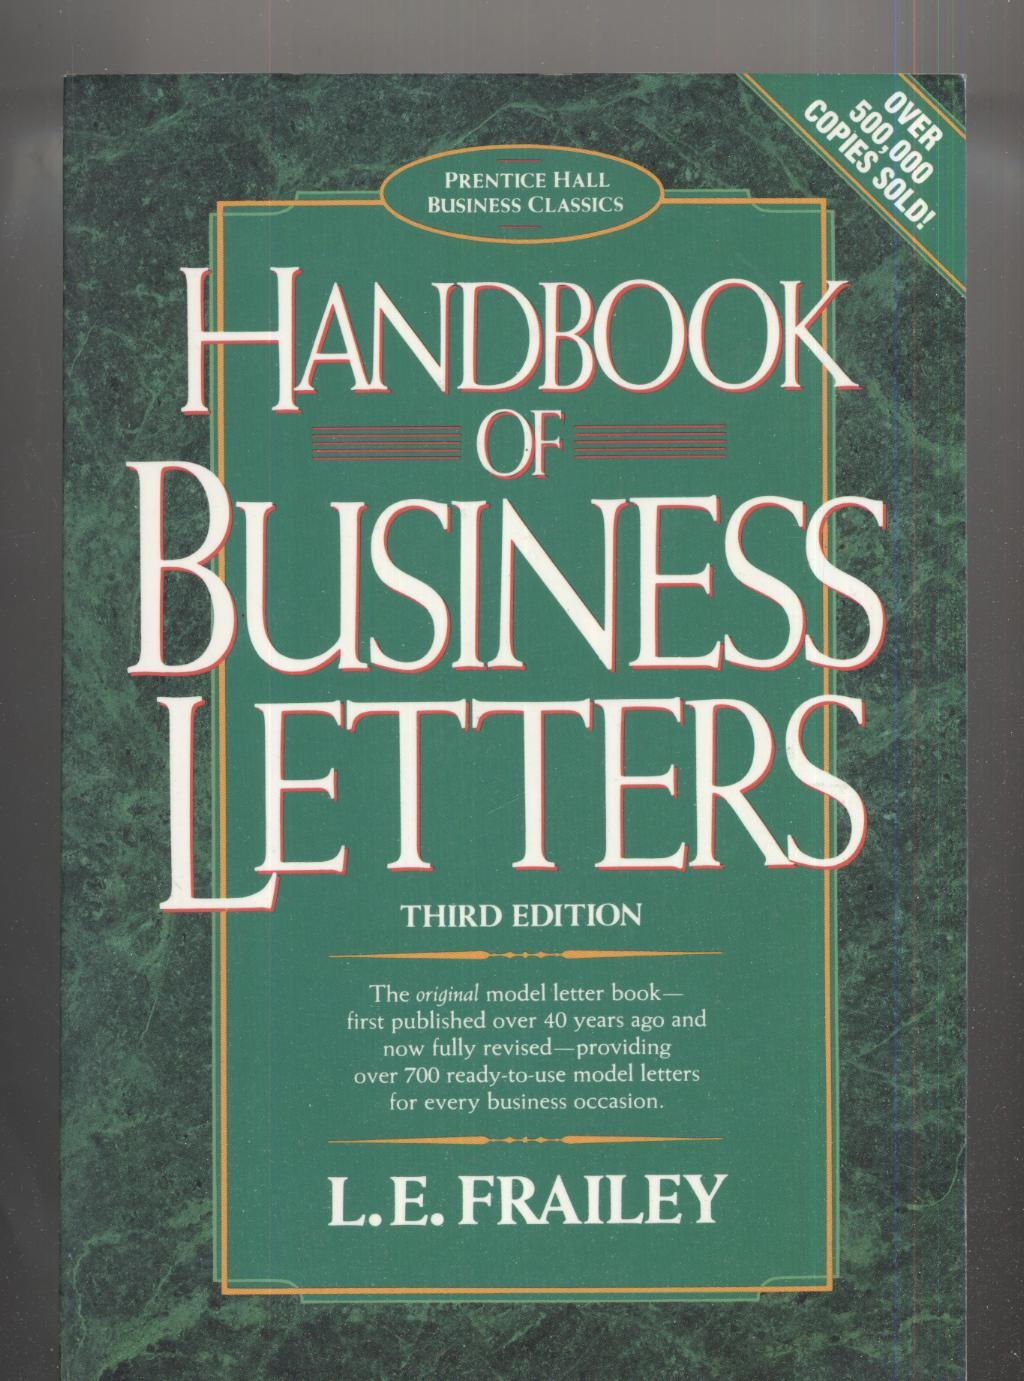 Handbook Of Business Letters By L E Frailey Prentice Hall